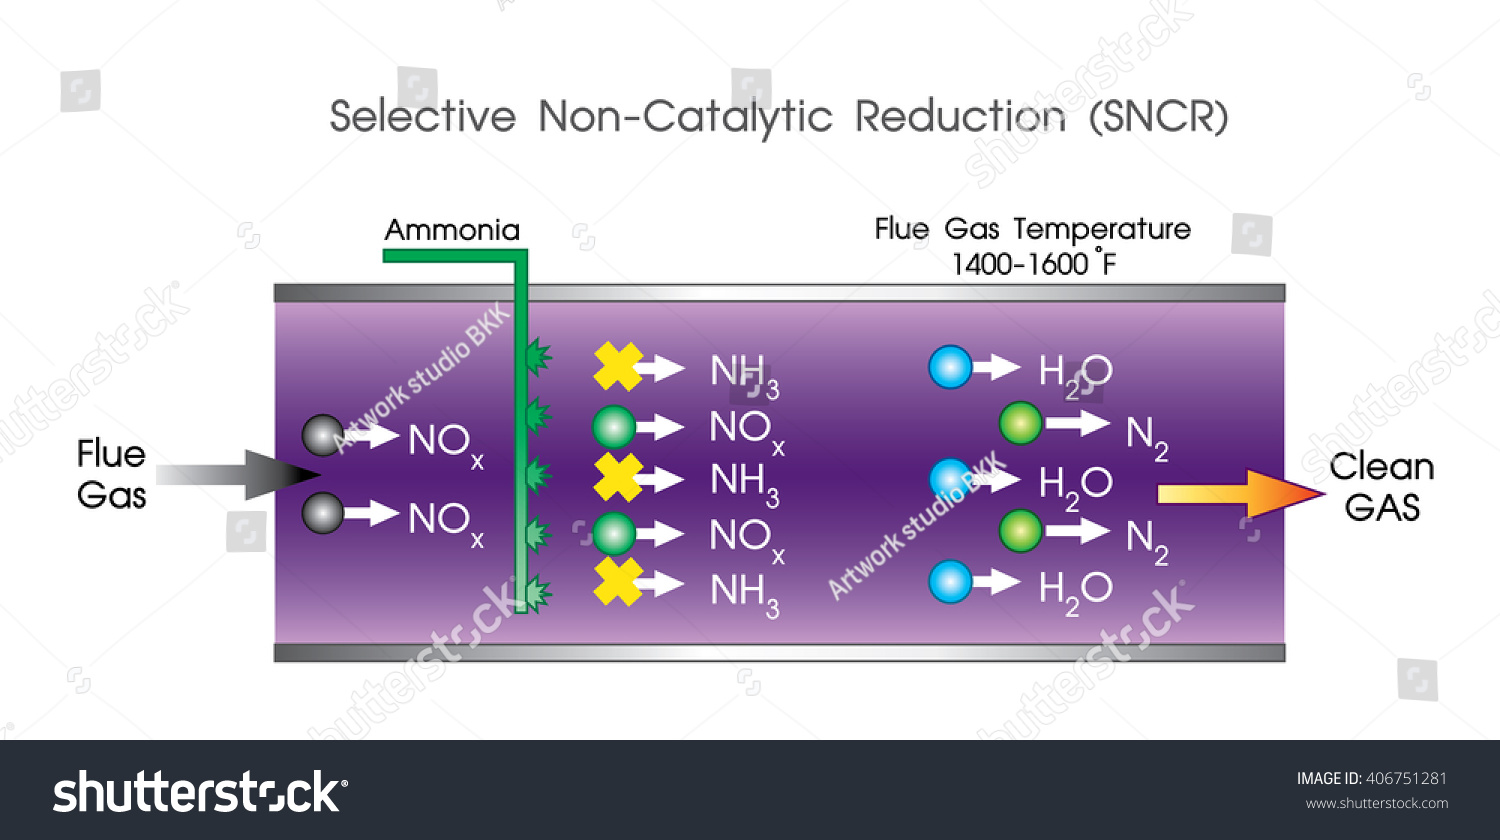 Selective non-catalytic reduction is a… Stock Photo 406751281